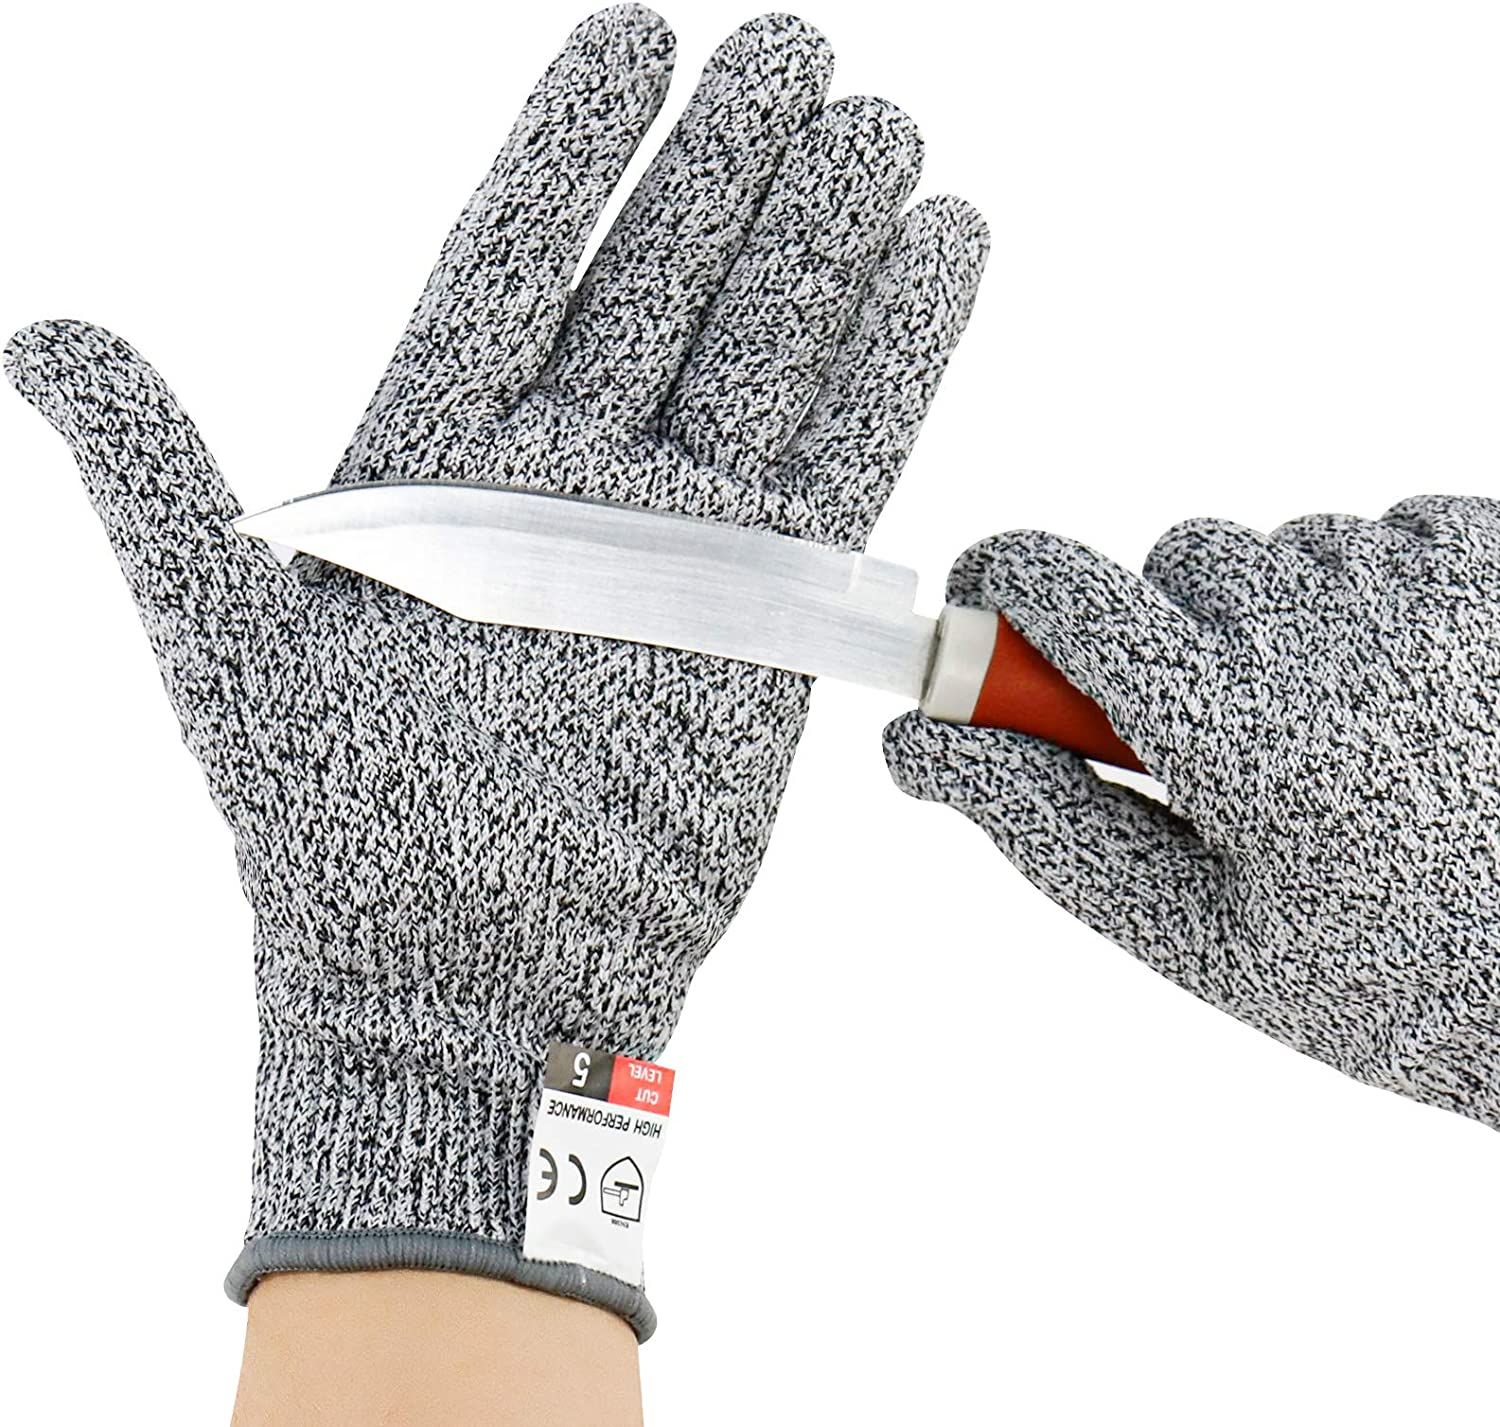 Cut Resistant Gloves for Kitchen - Food Grade Level 5 Protection, 1 Pair